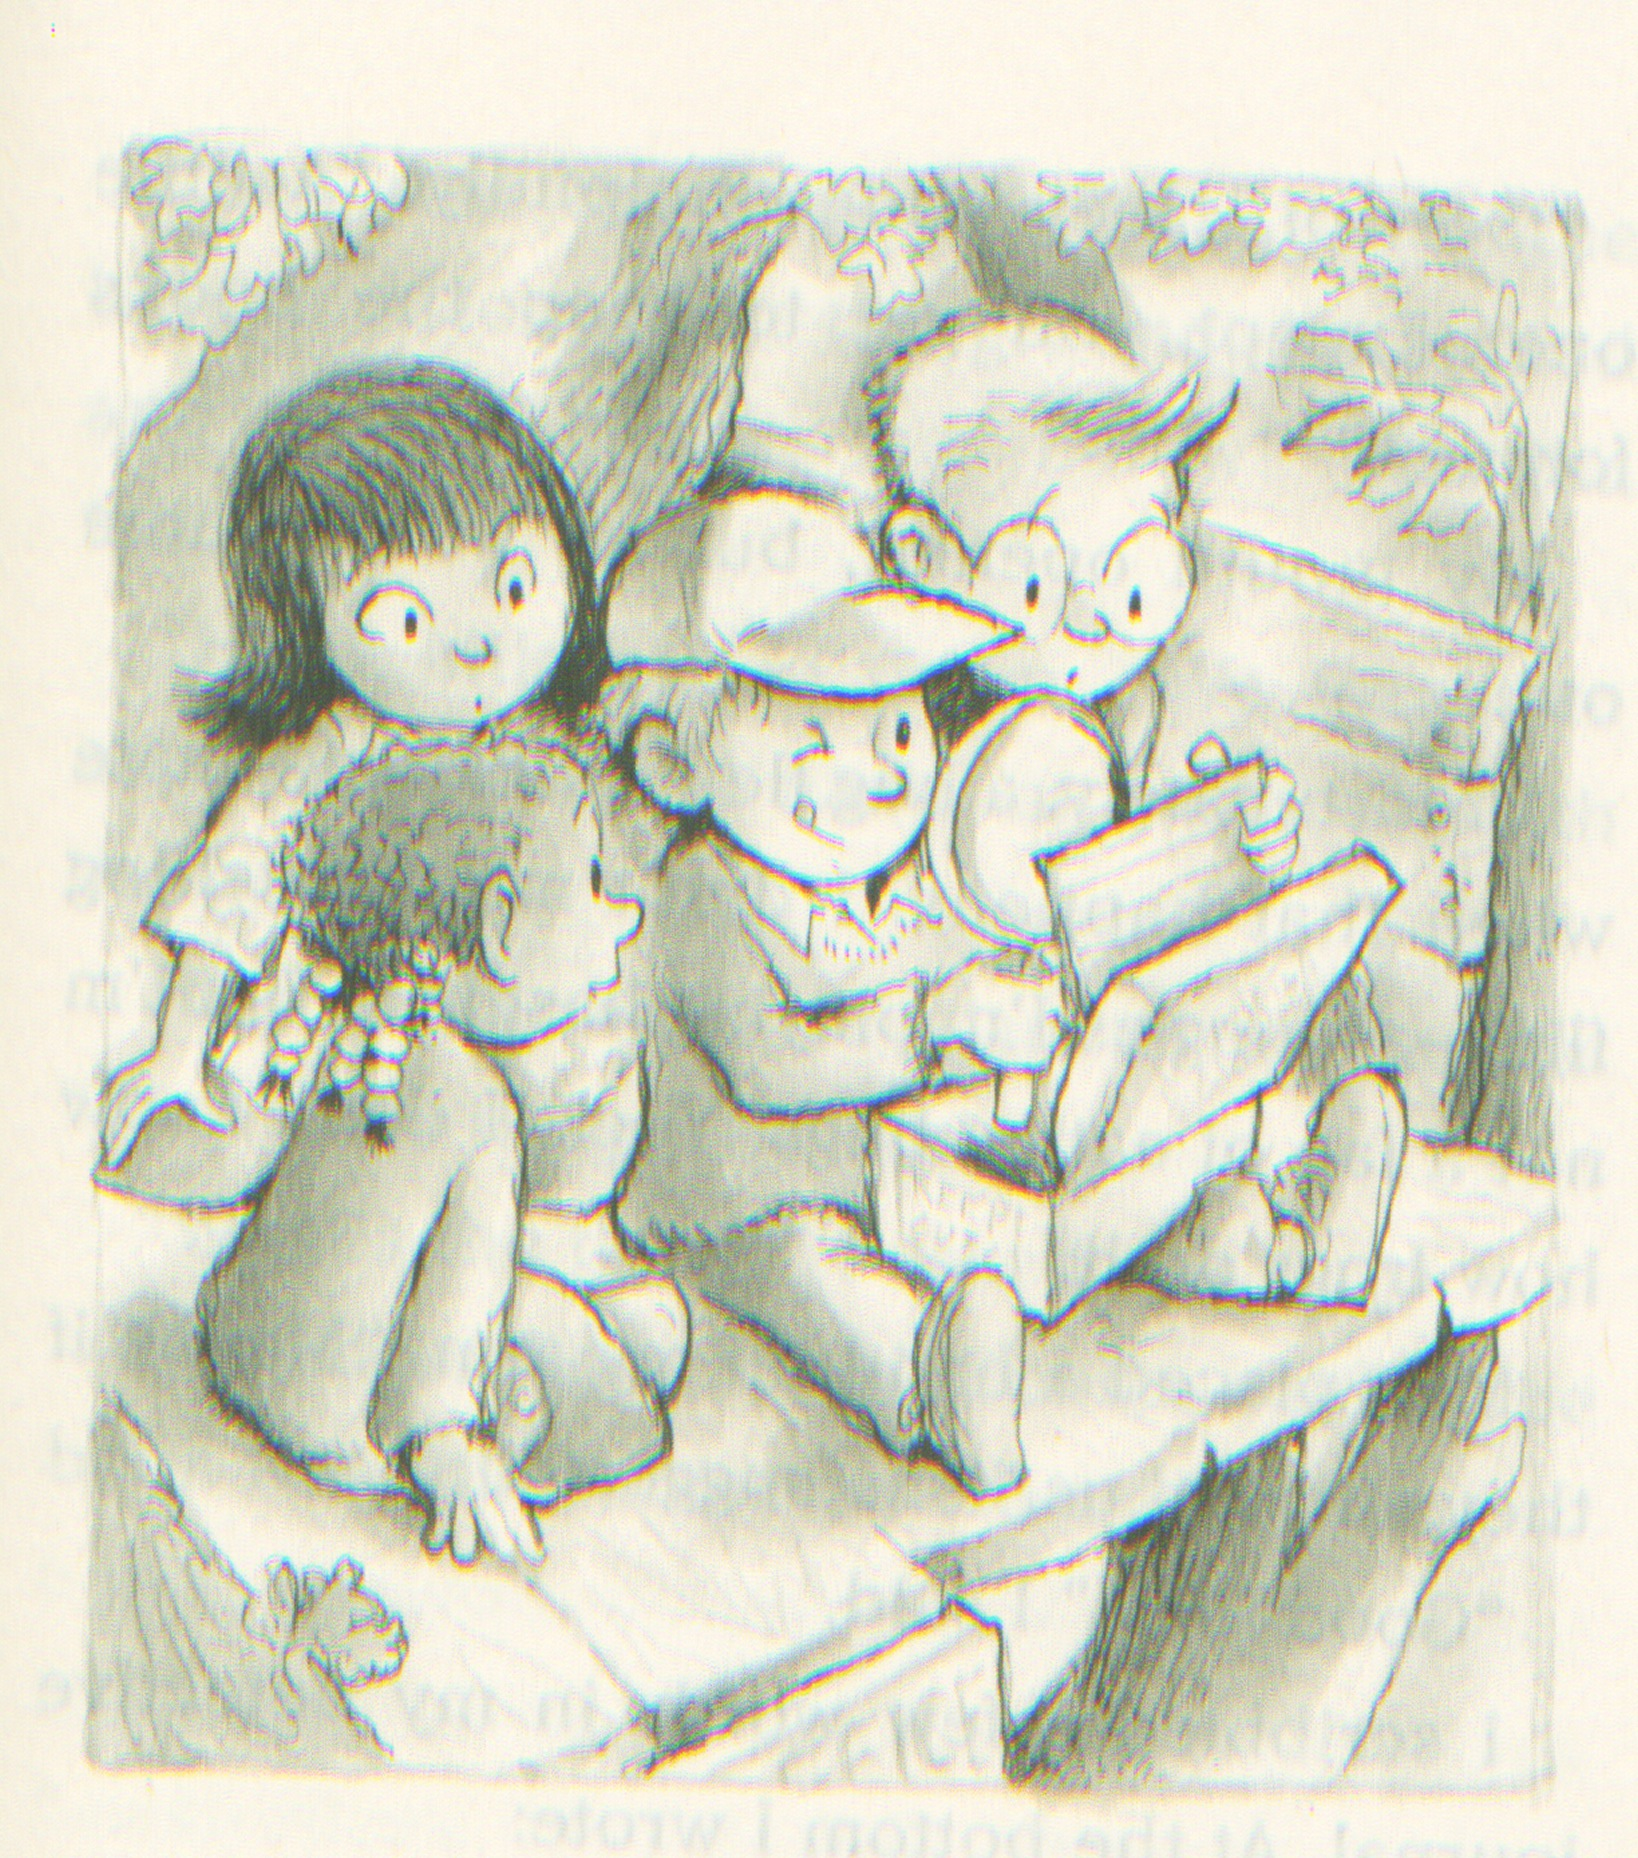 Up in the treehouse with Danika, Mila, Jigsaw, and Joey. Illustration by R.W. Alley from THE CASE FROM OUTER SPACE.